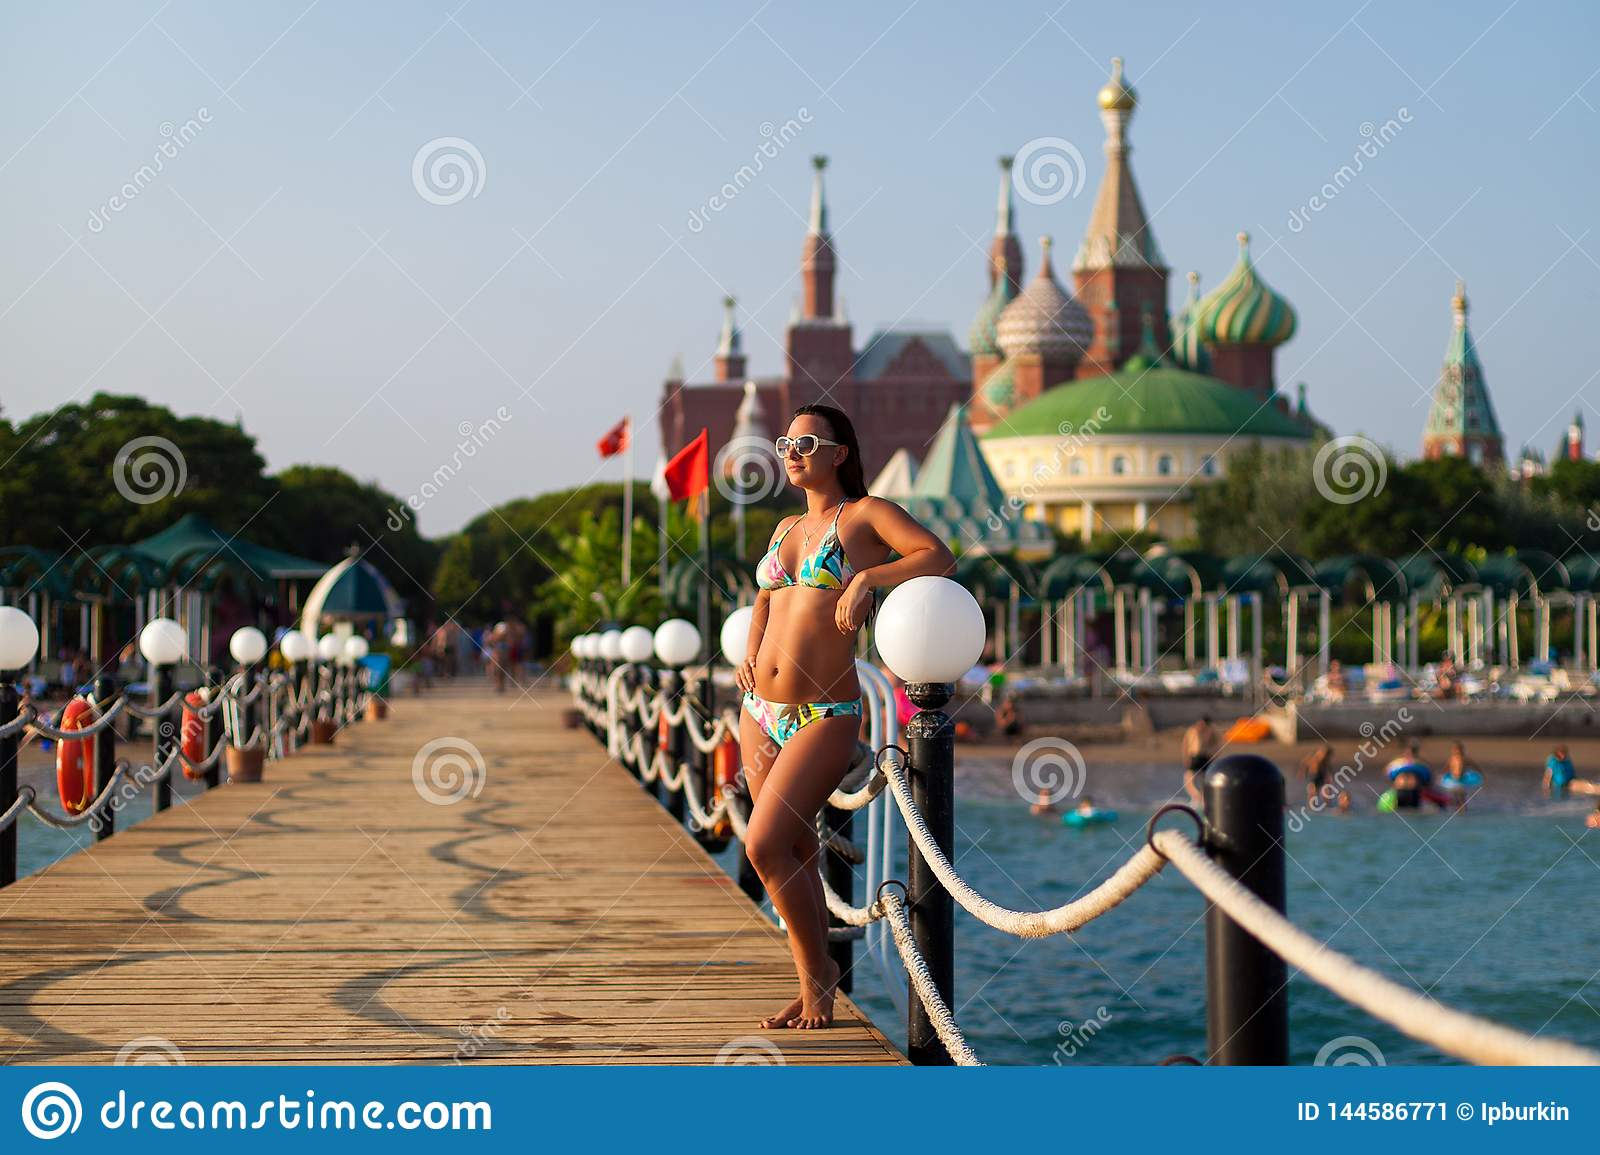 Girl in a swimsuit on the pier on the background of the hotel. girl posing on the wooden pier on the beach, against the backdrop